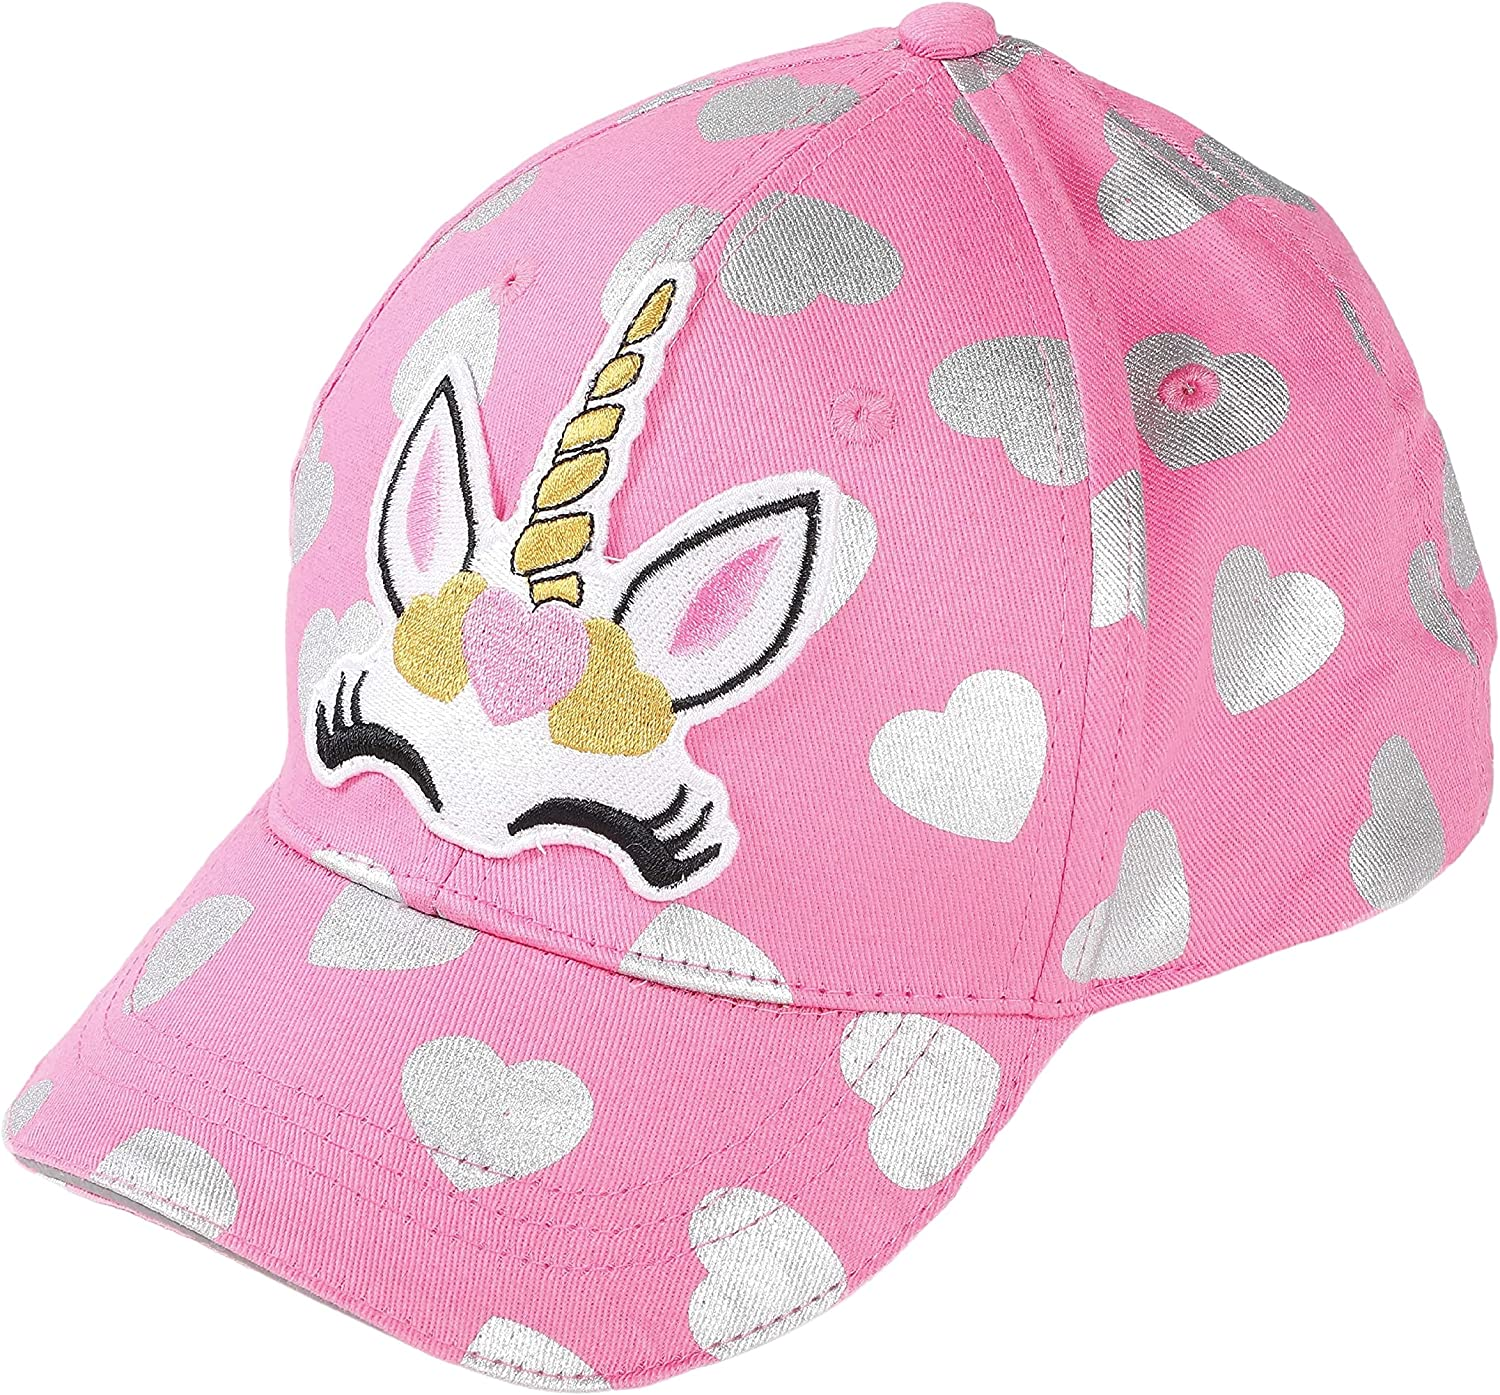 New color AWHALE Girl's Baseball Hat – P Toddler Cap with Cotton Ranking TOP4